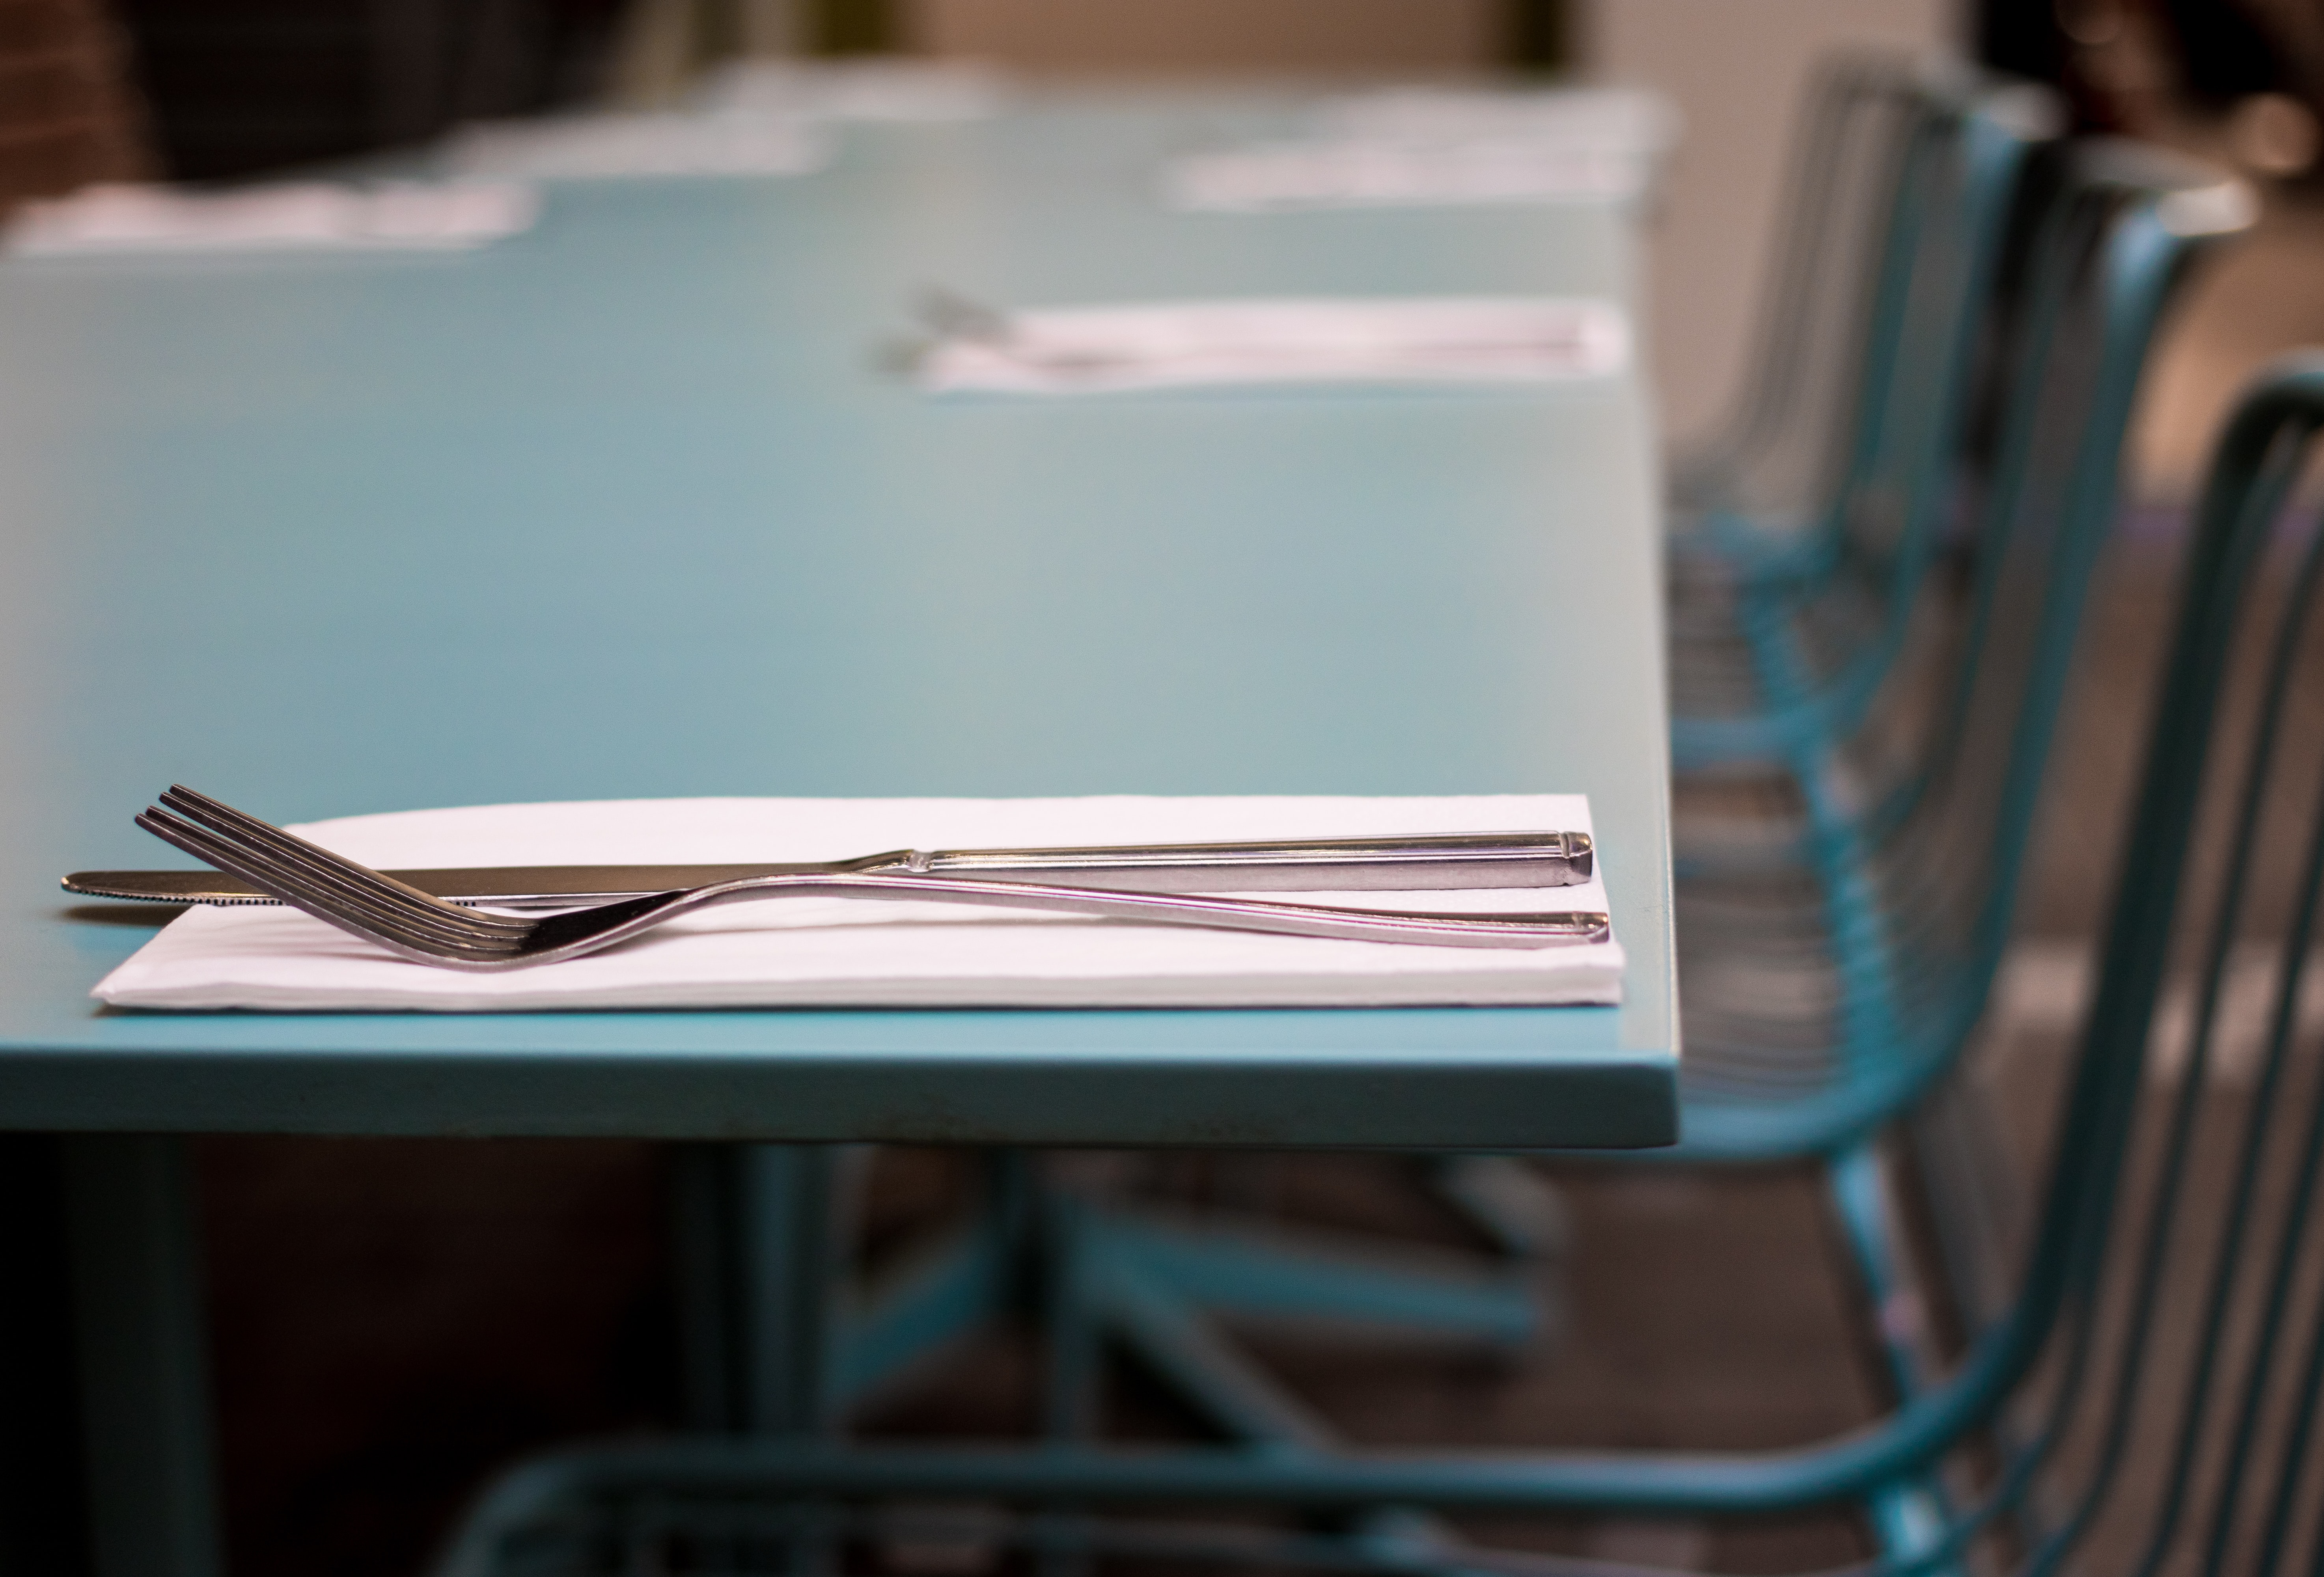 silver fork beside knife on green table selective focus photography